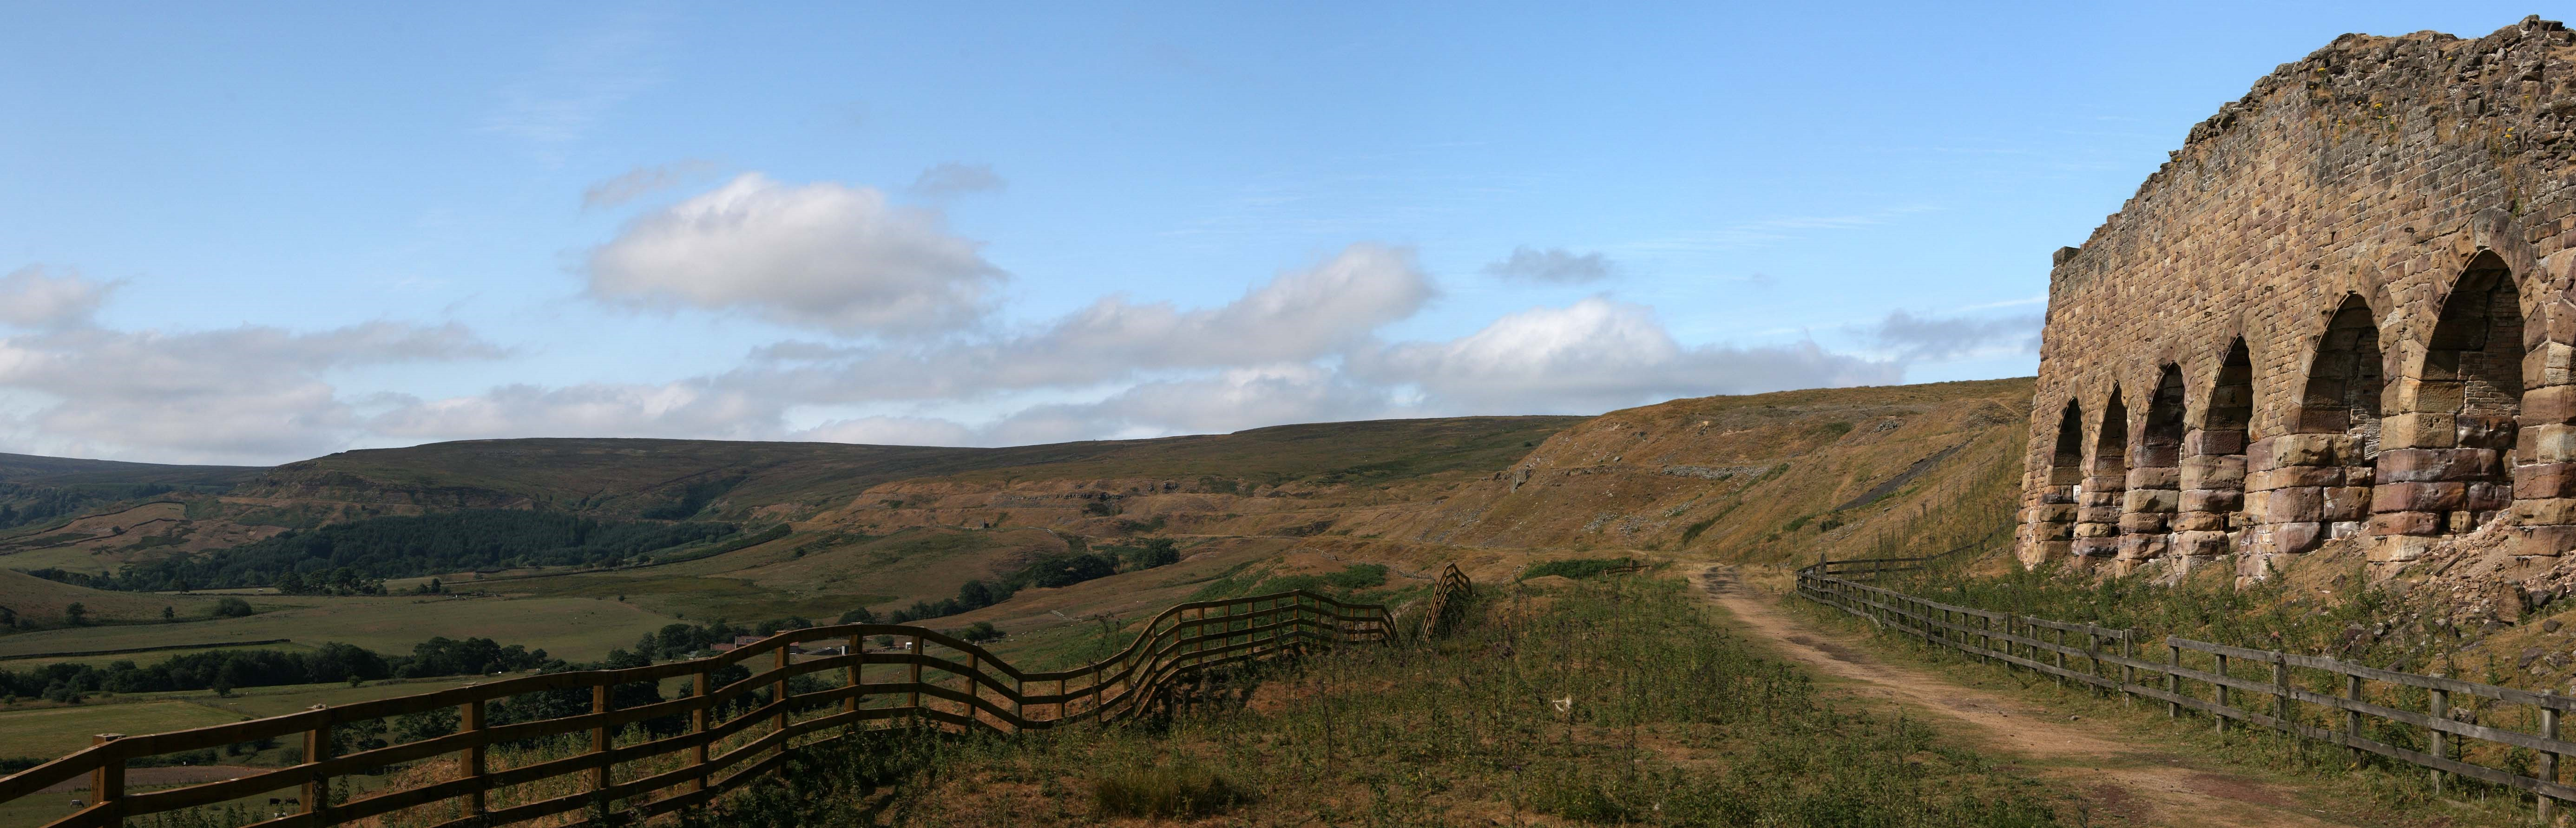 Rosedale East kilns with new fencing as a part of the Land of Iron project. Copyright NYMNPA.